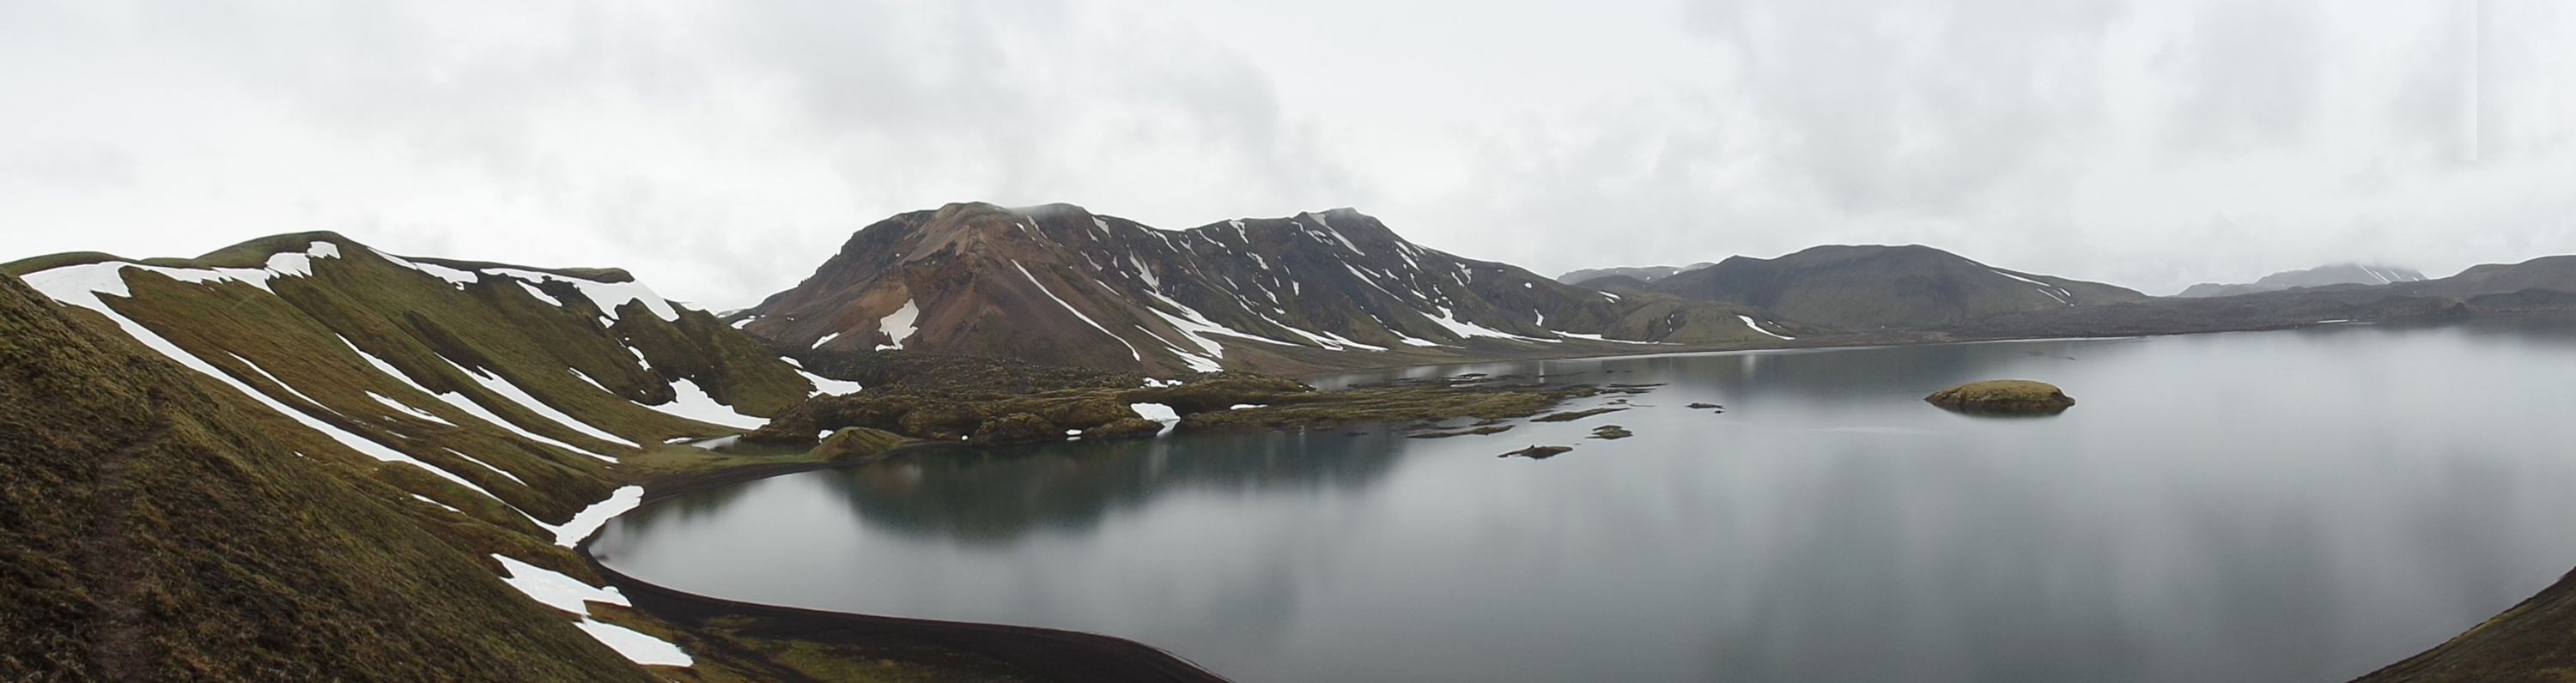 Frostastaðavatn is a clear spring fed lake in the southern highlands near Landmannalaugar. It has abundant stickleback as well as arctic charr. Copyright: Jenny Boughman